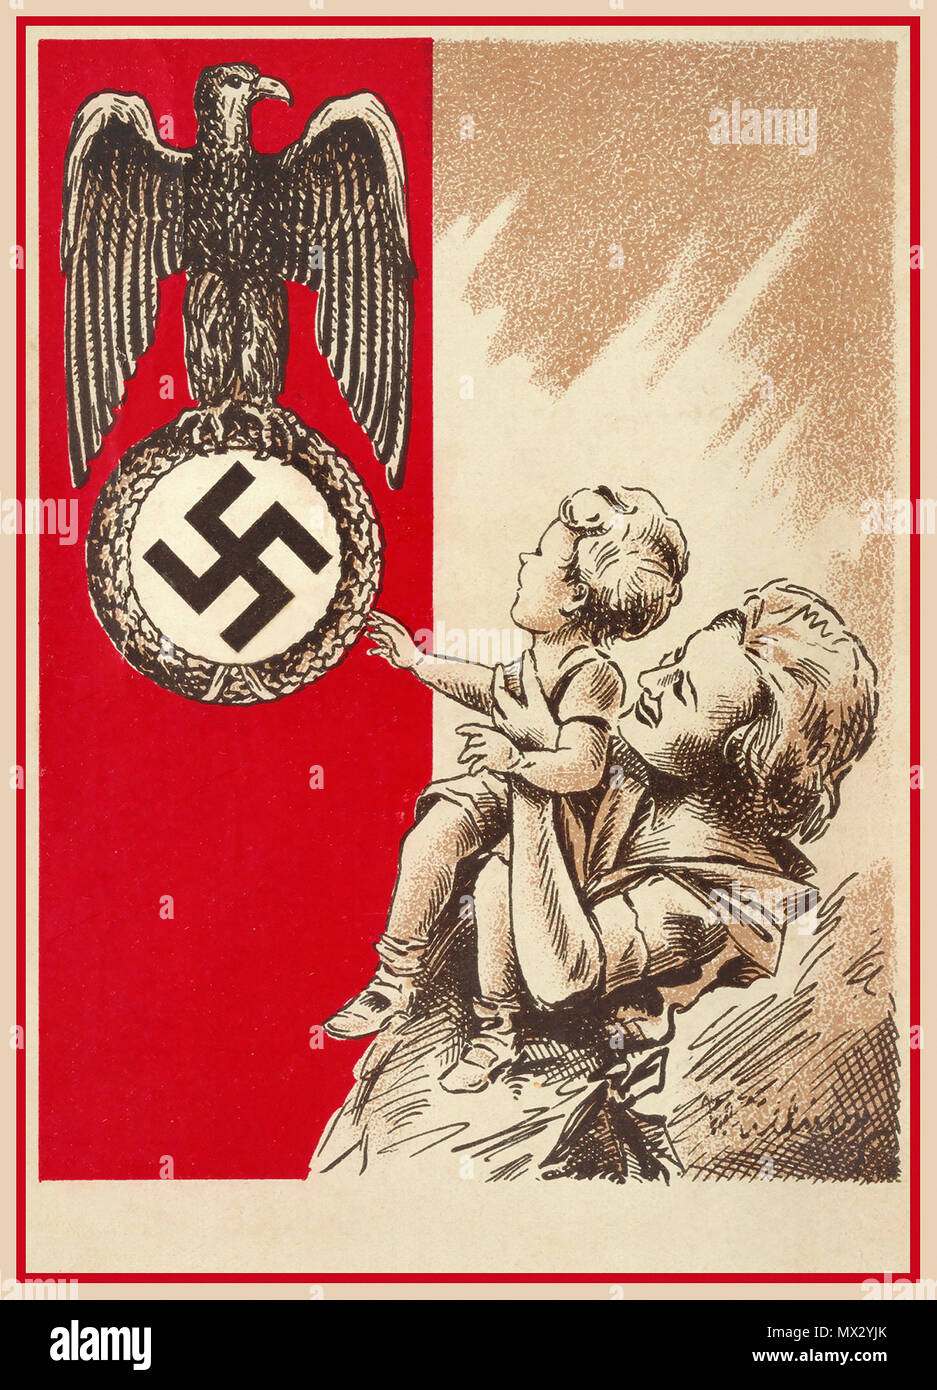 1939 Propaganda Postcard Nazi Germany showing a mother and child with the Fatherland Nazi Eagle and Swastika as a National Guardian Symbol to be revered respected and admired... Stock Photo